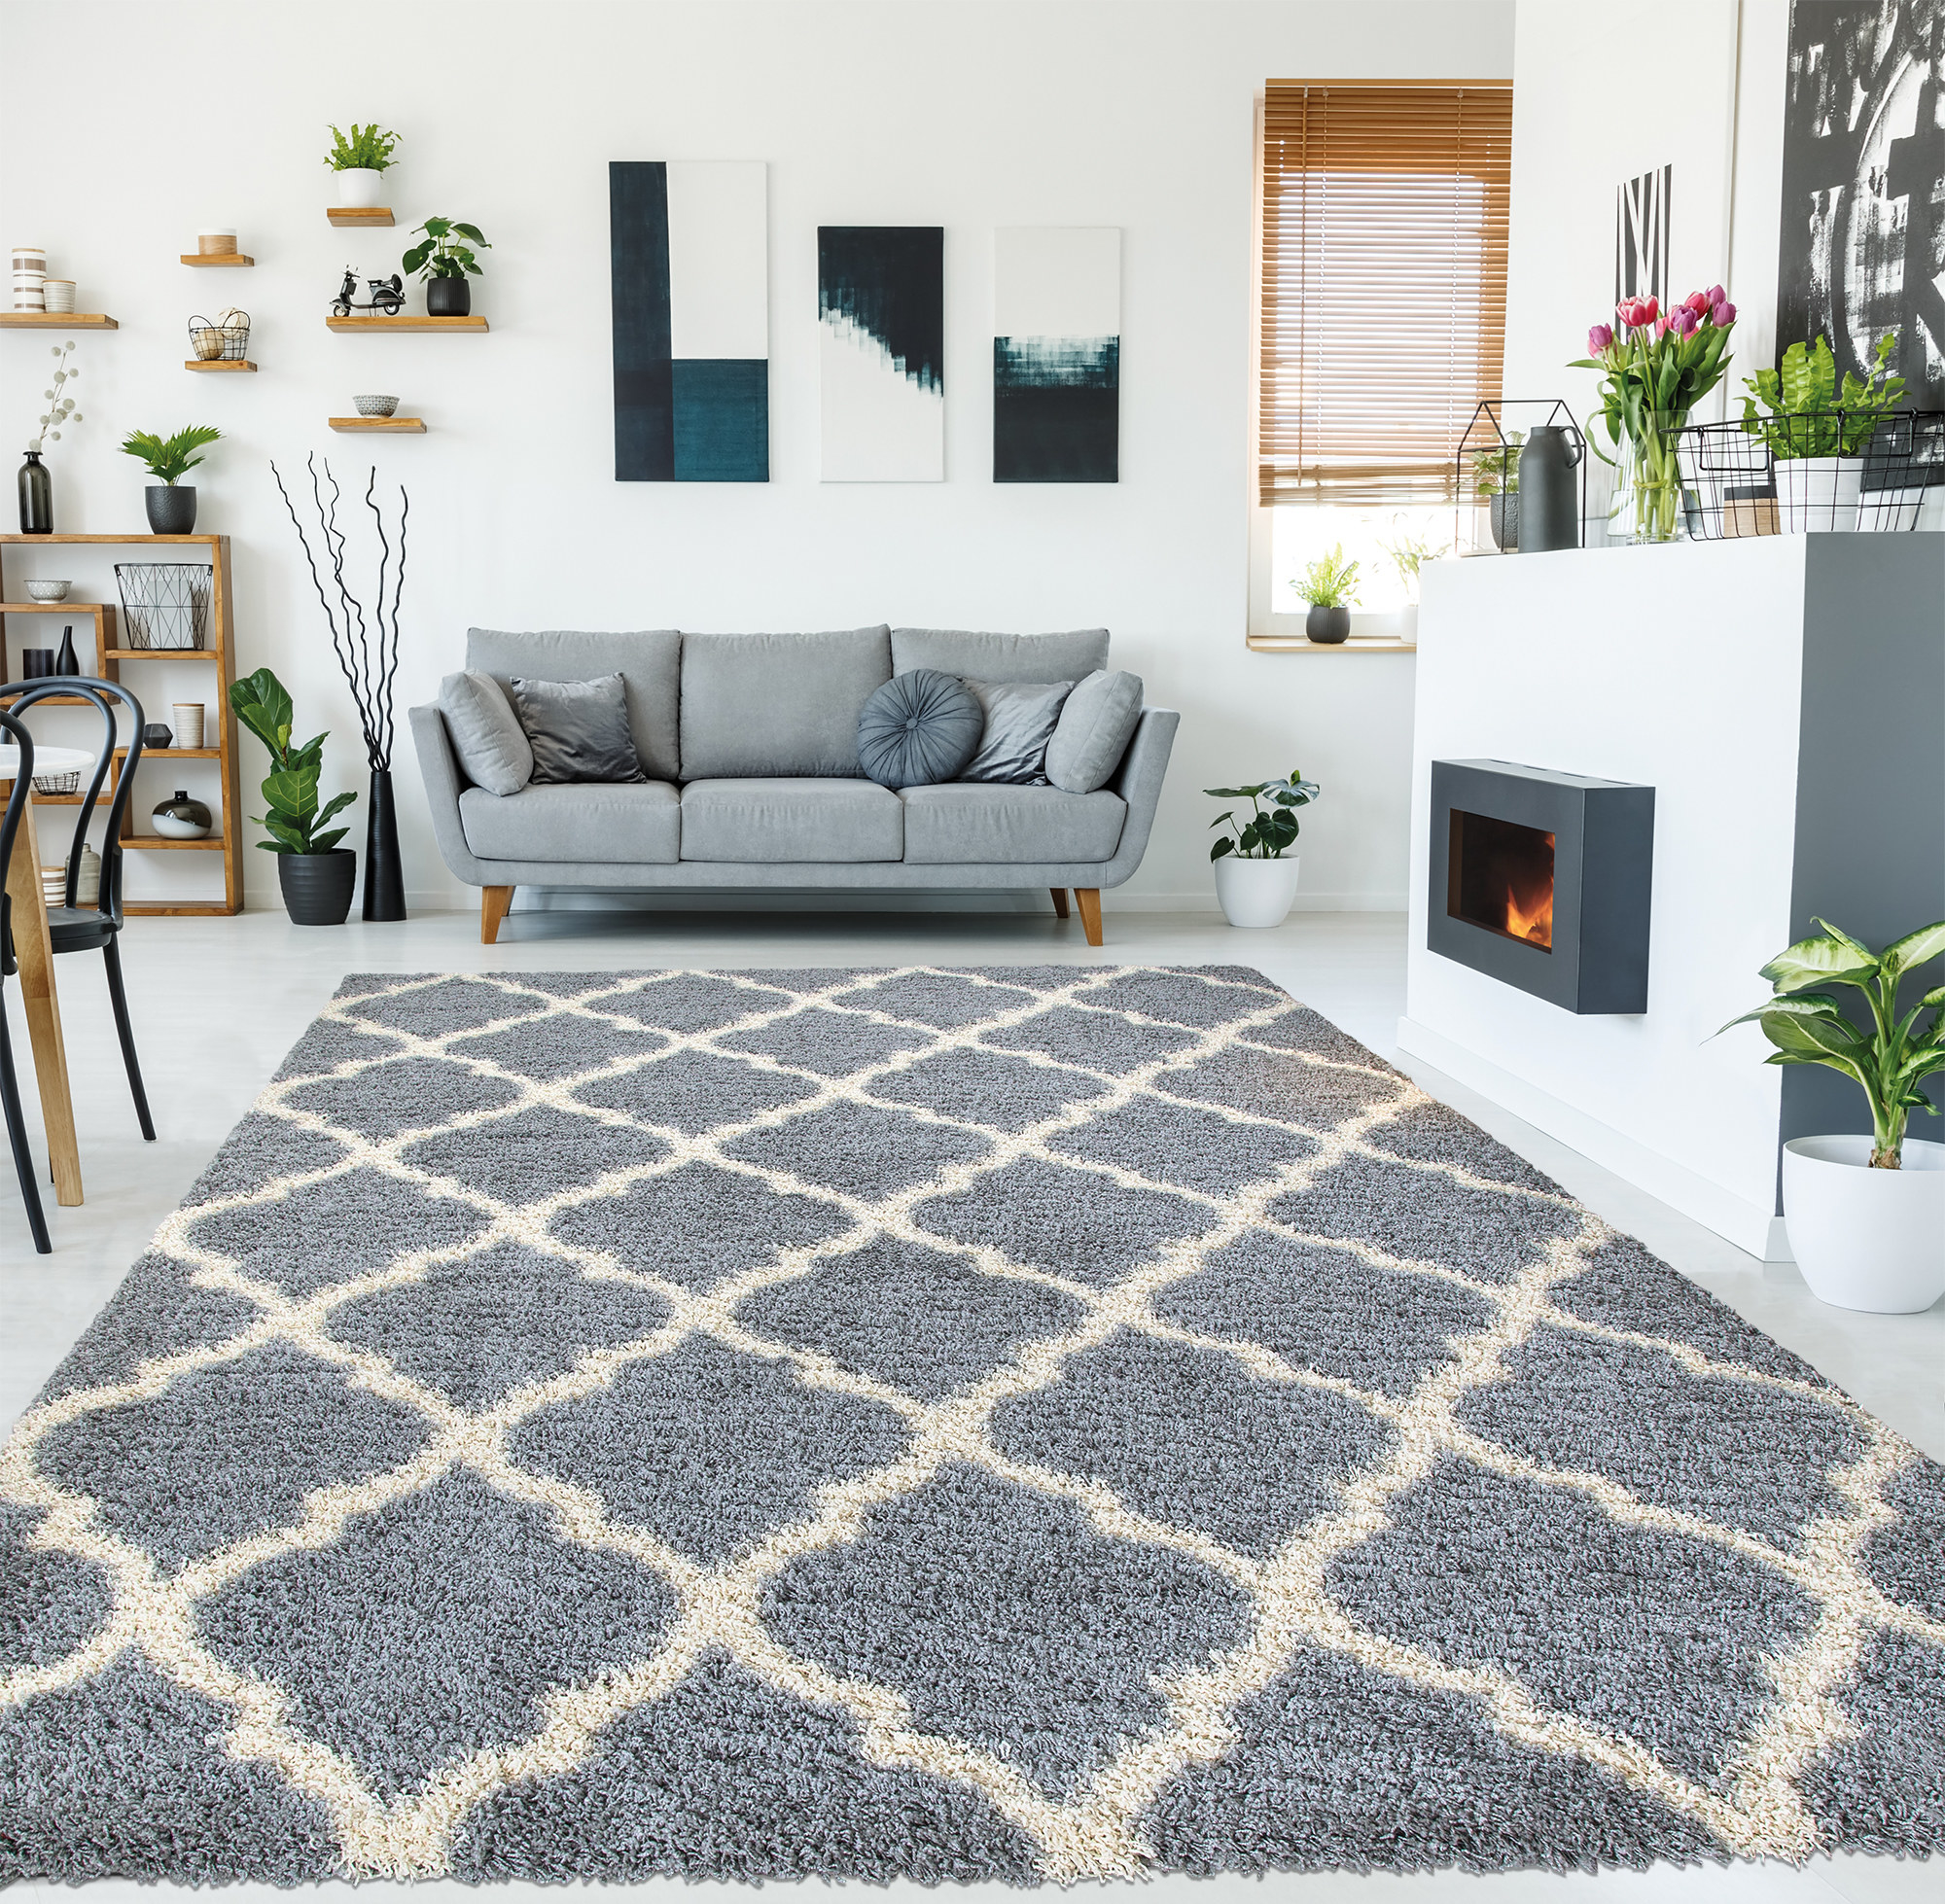 the rug displayed in a living room with a couch, plants, fireplace, and wall art surrounding it